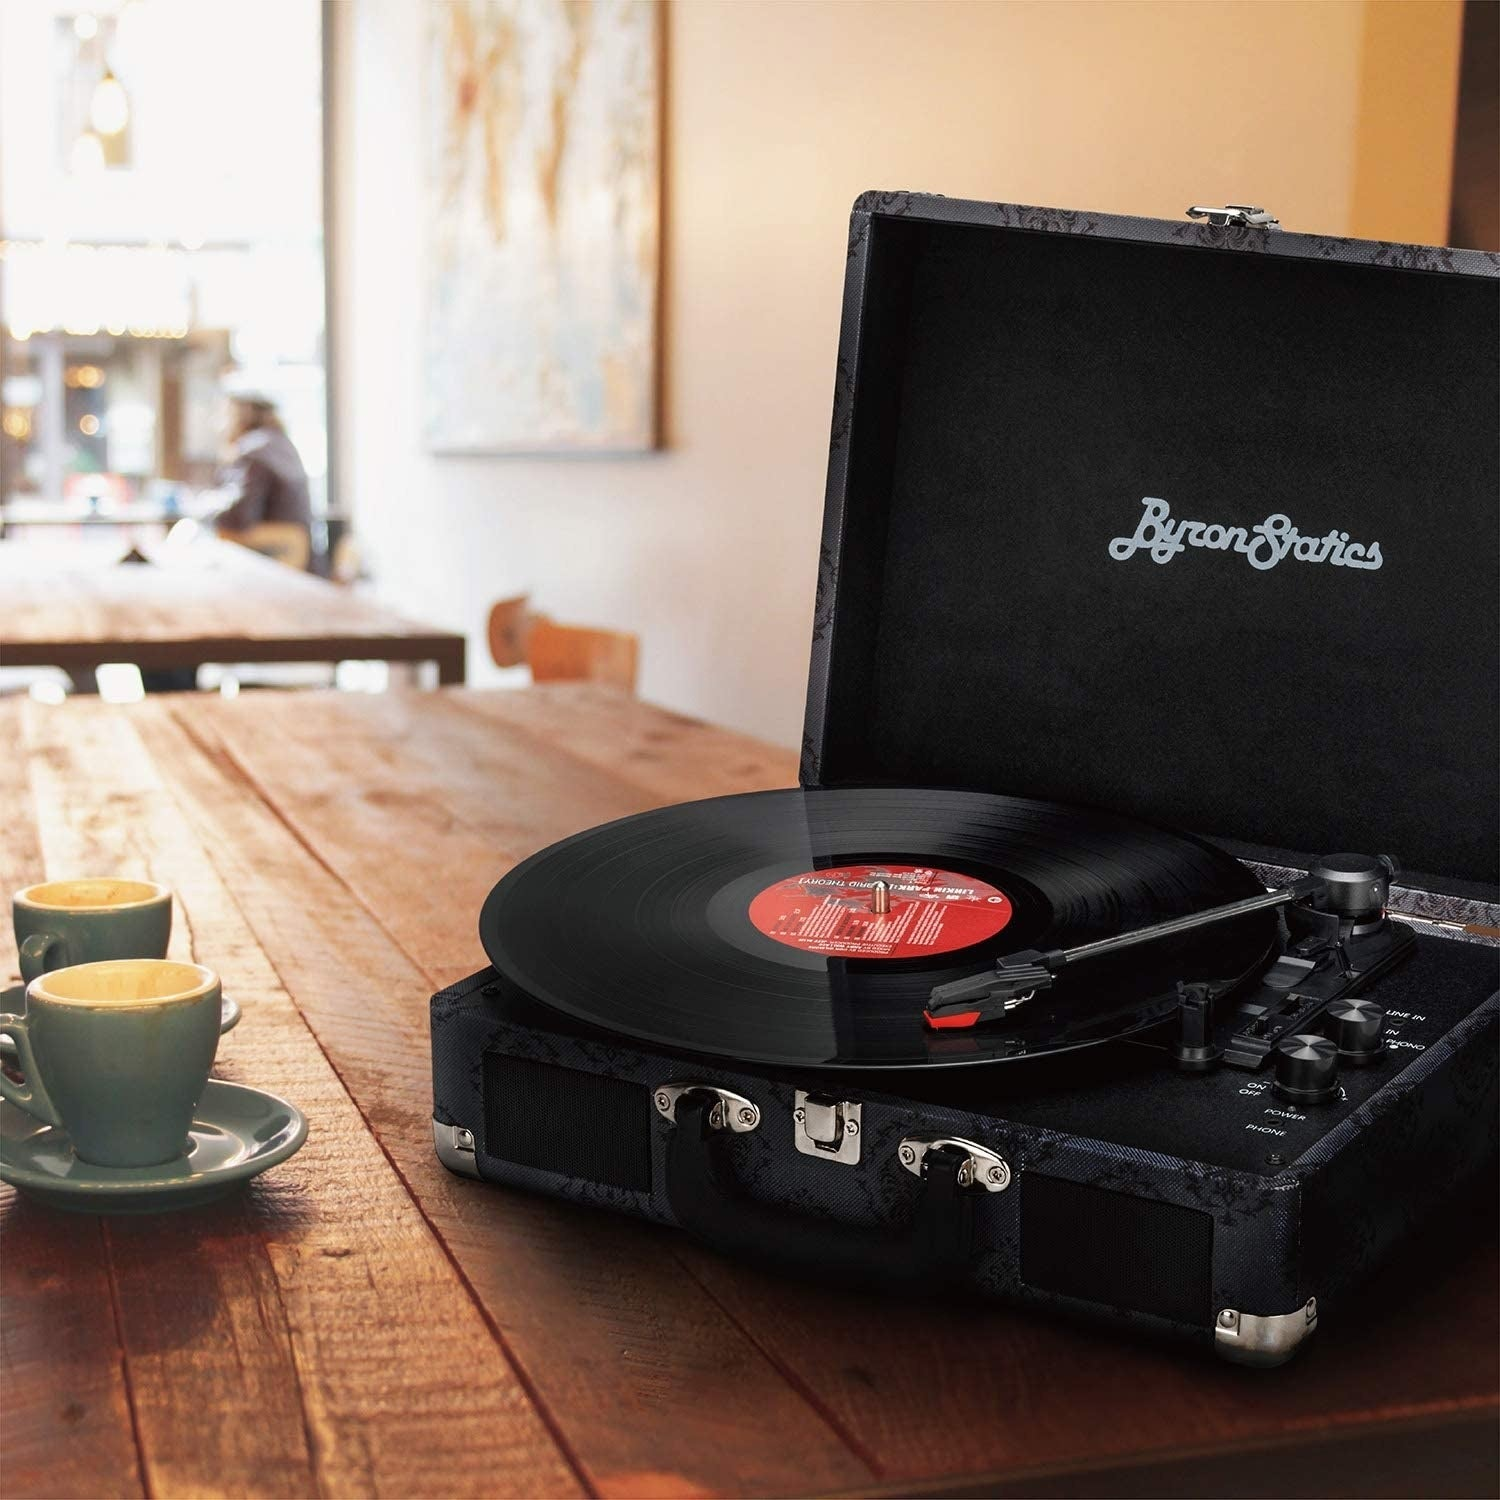 A record player with a vinyl record ready to be played